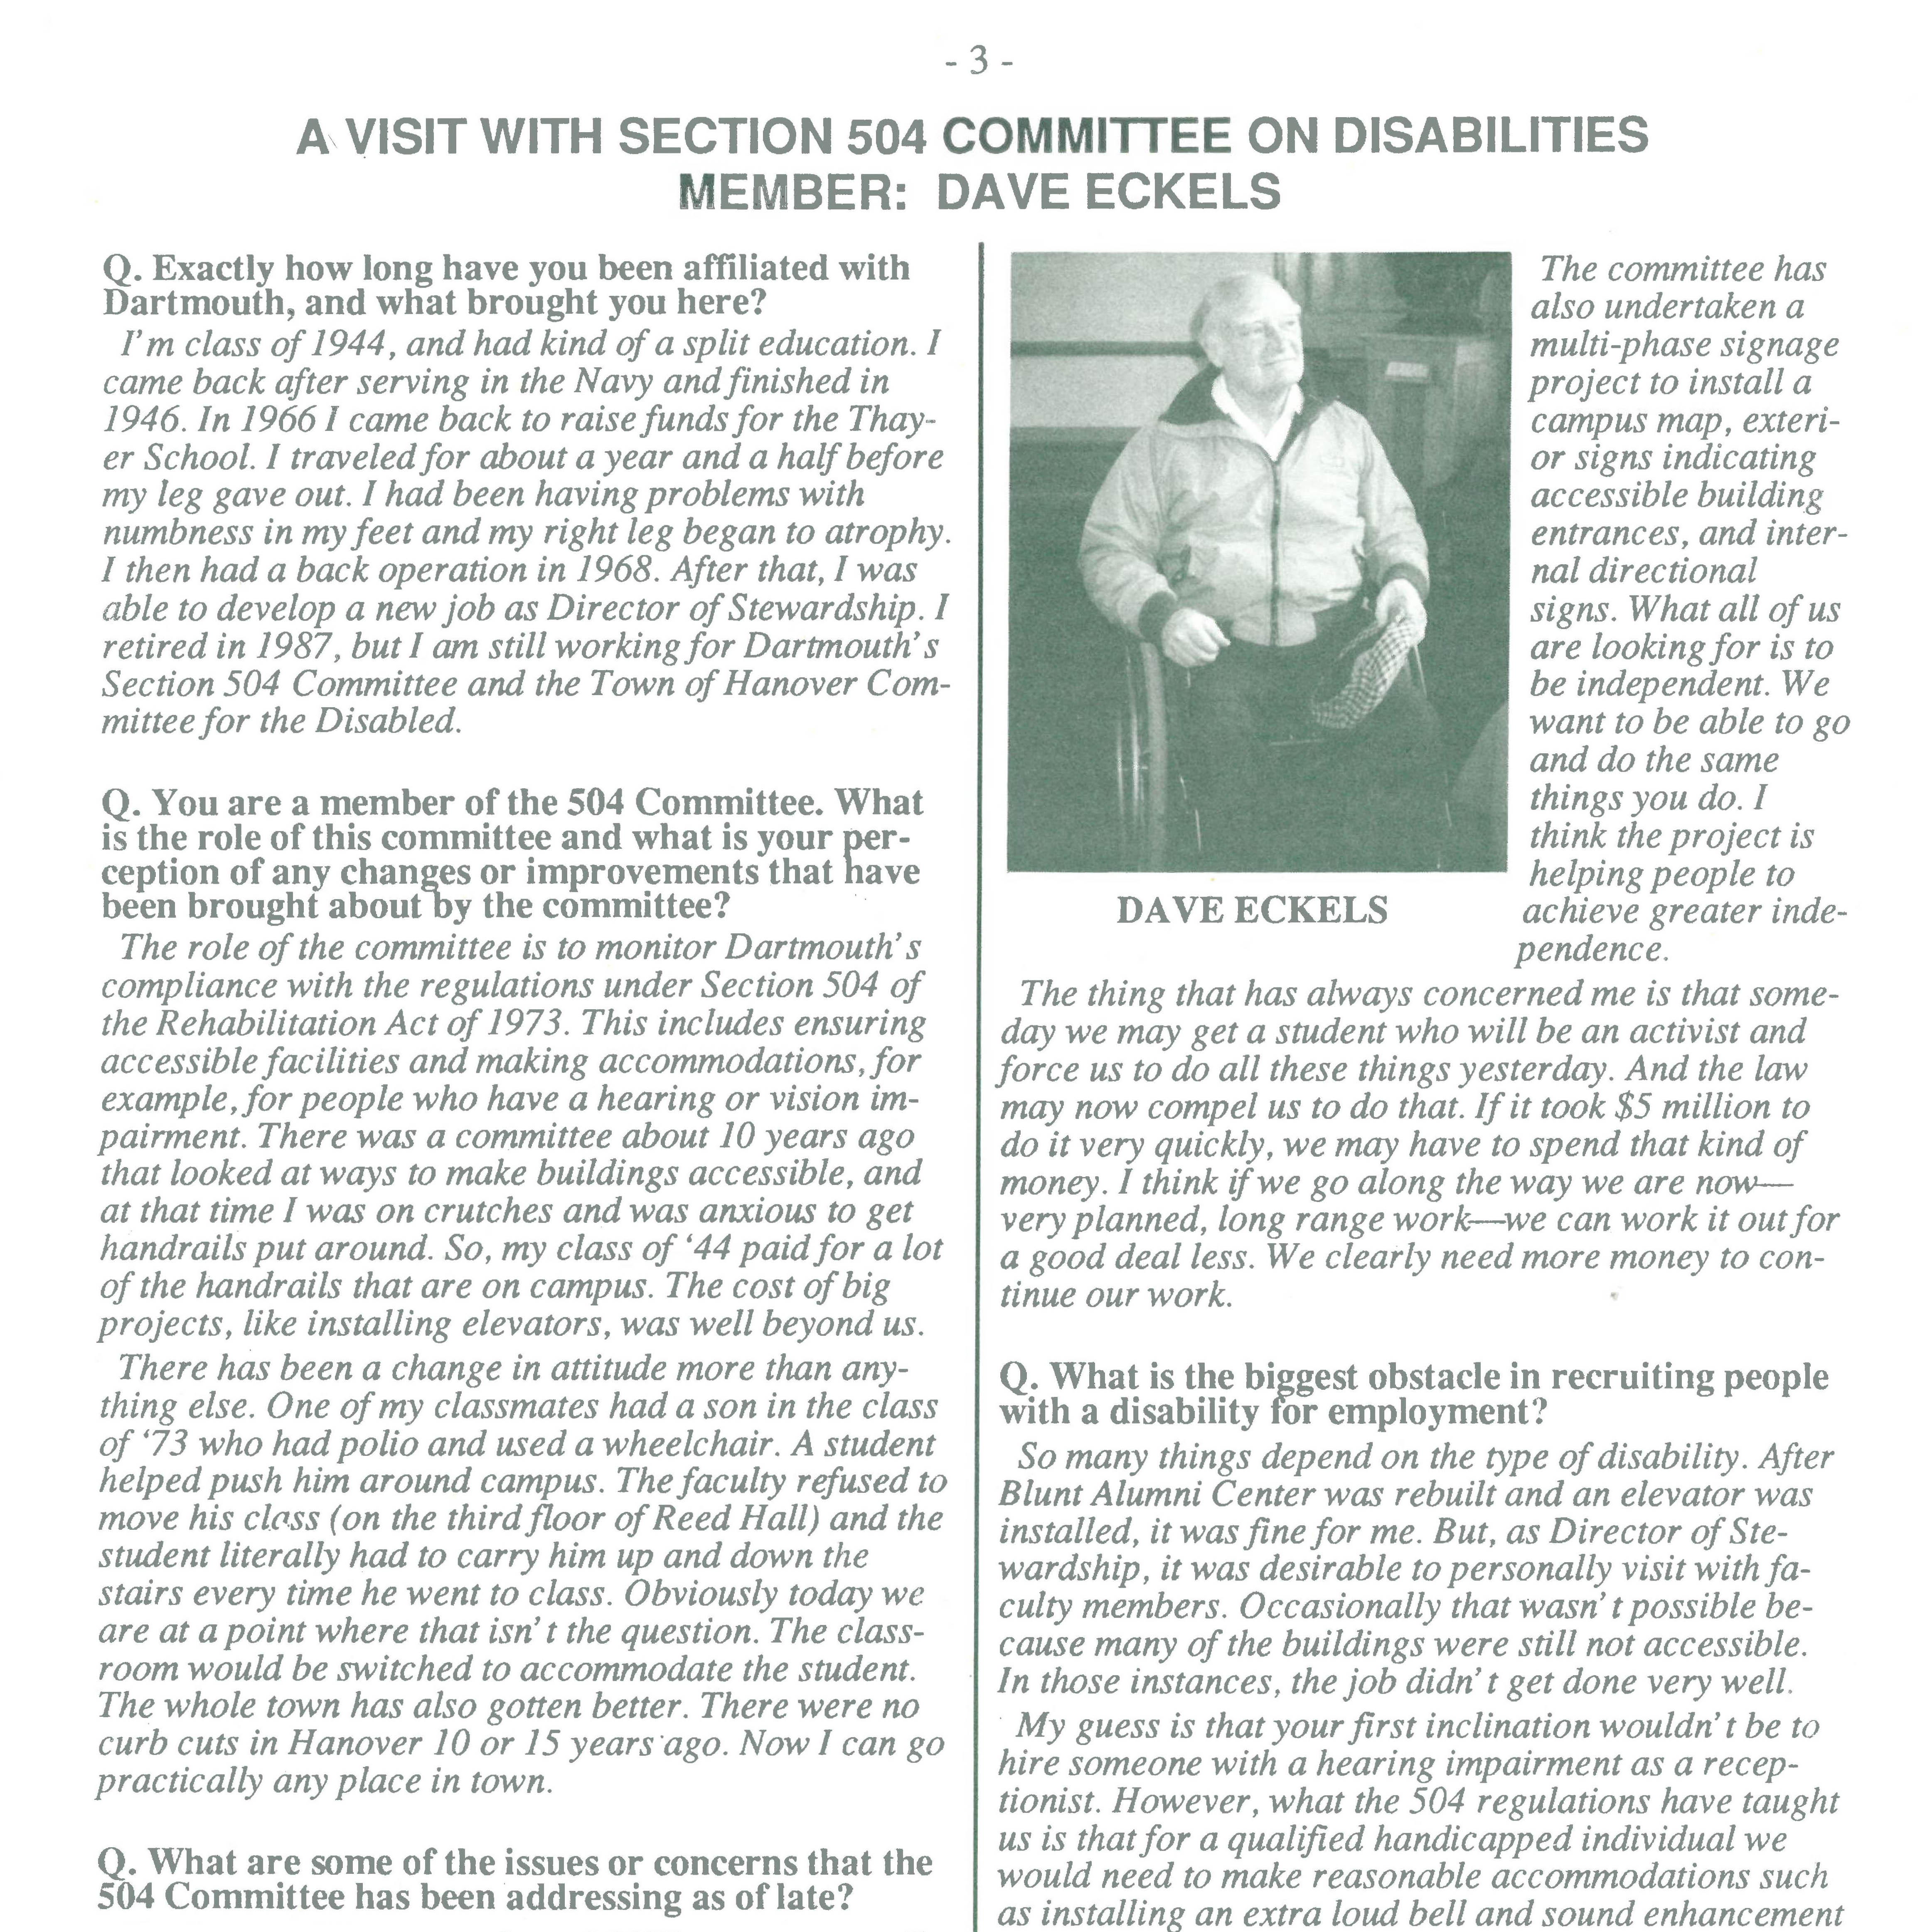 An interview with Eckels in his capacity as a member of the Section 504 Committee in the Winter 1991 Affirmative Action Newsletter.